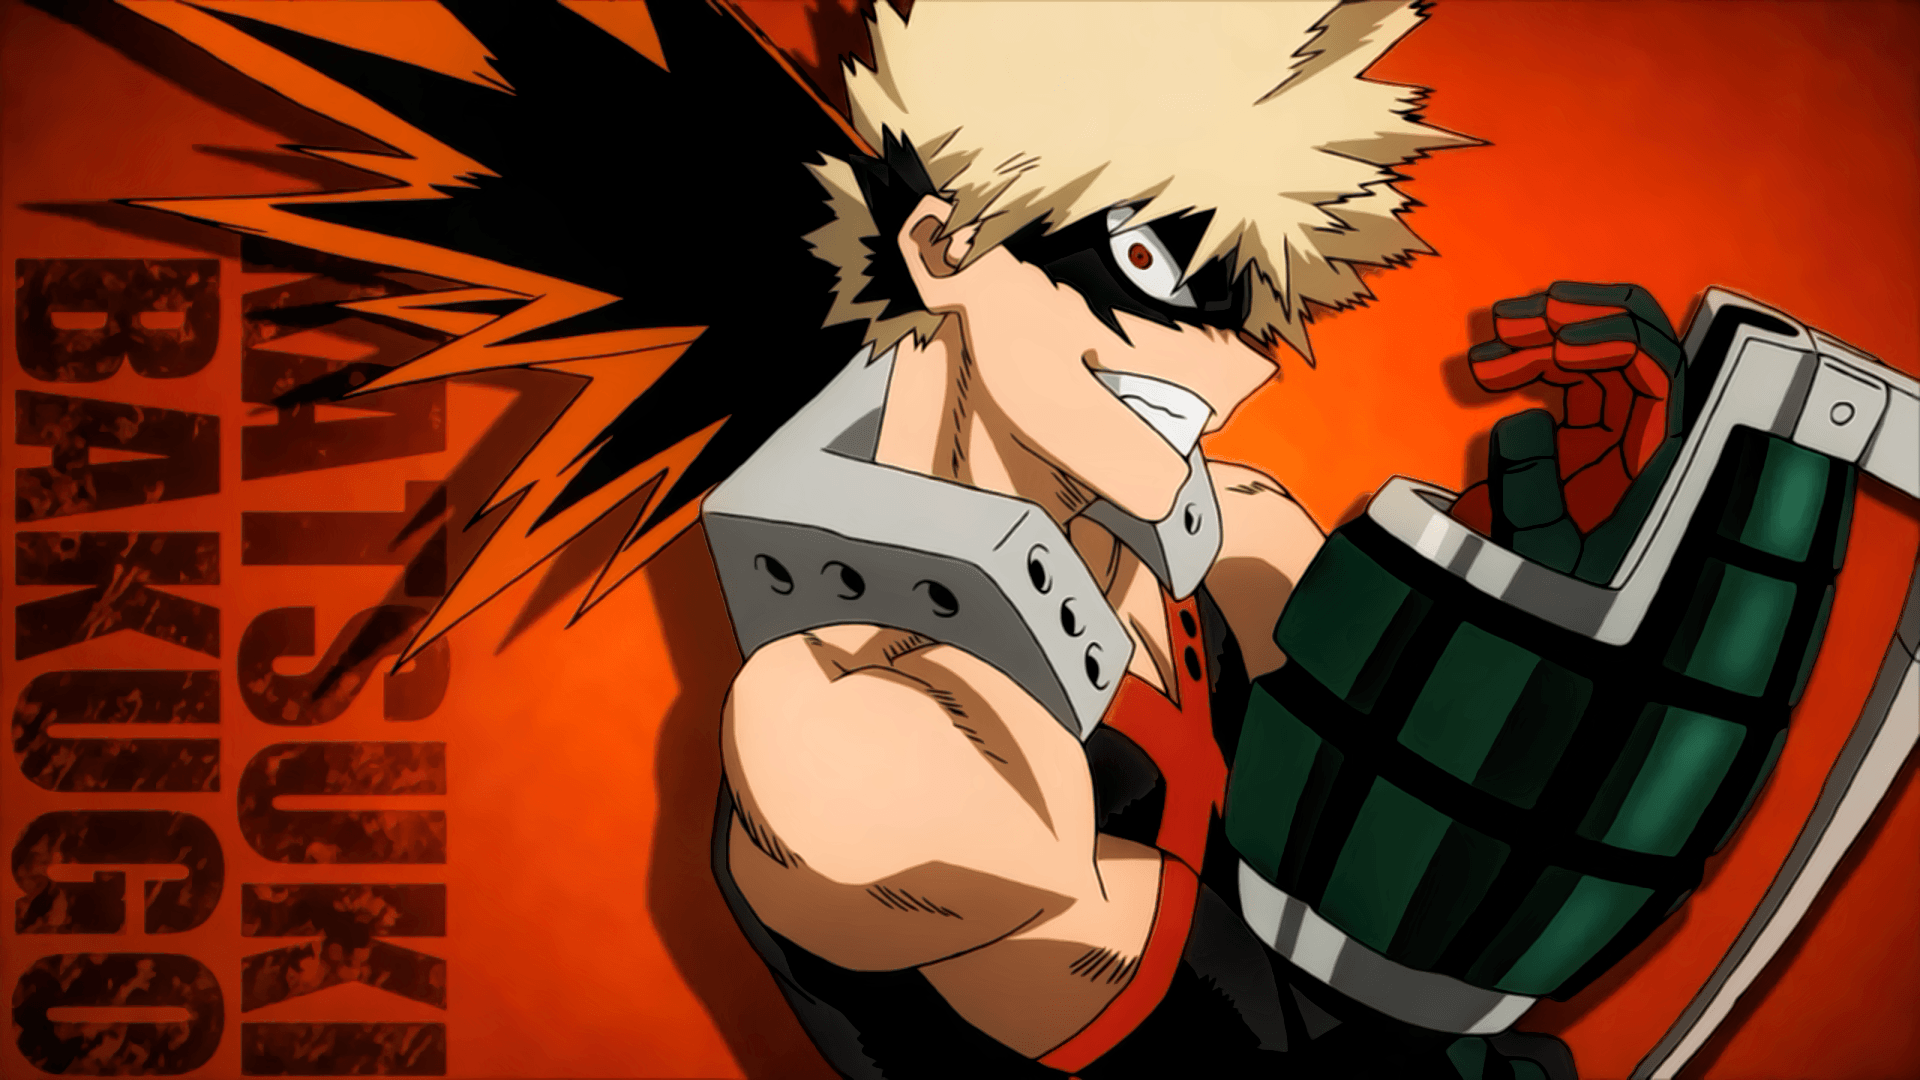 Awesome boku no hero academia backgrounds in high resolution for pc computer. Boku No Hero Academia Wallpapers - Wallpaper Cave